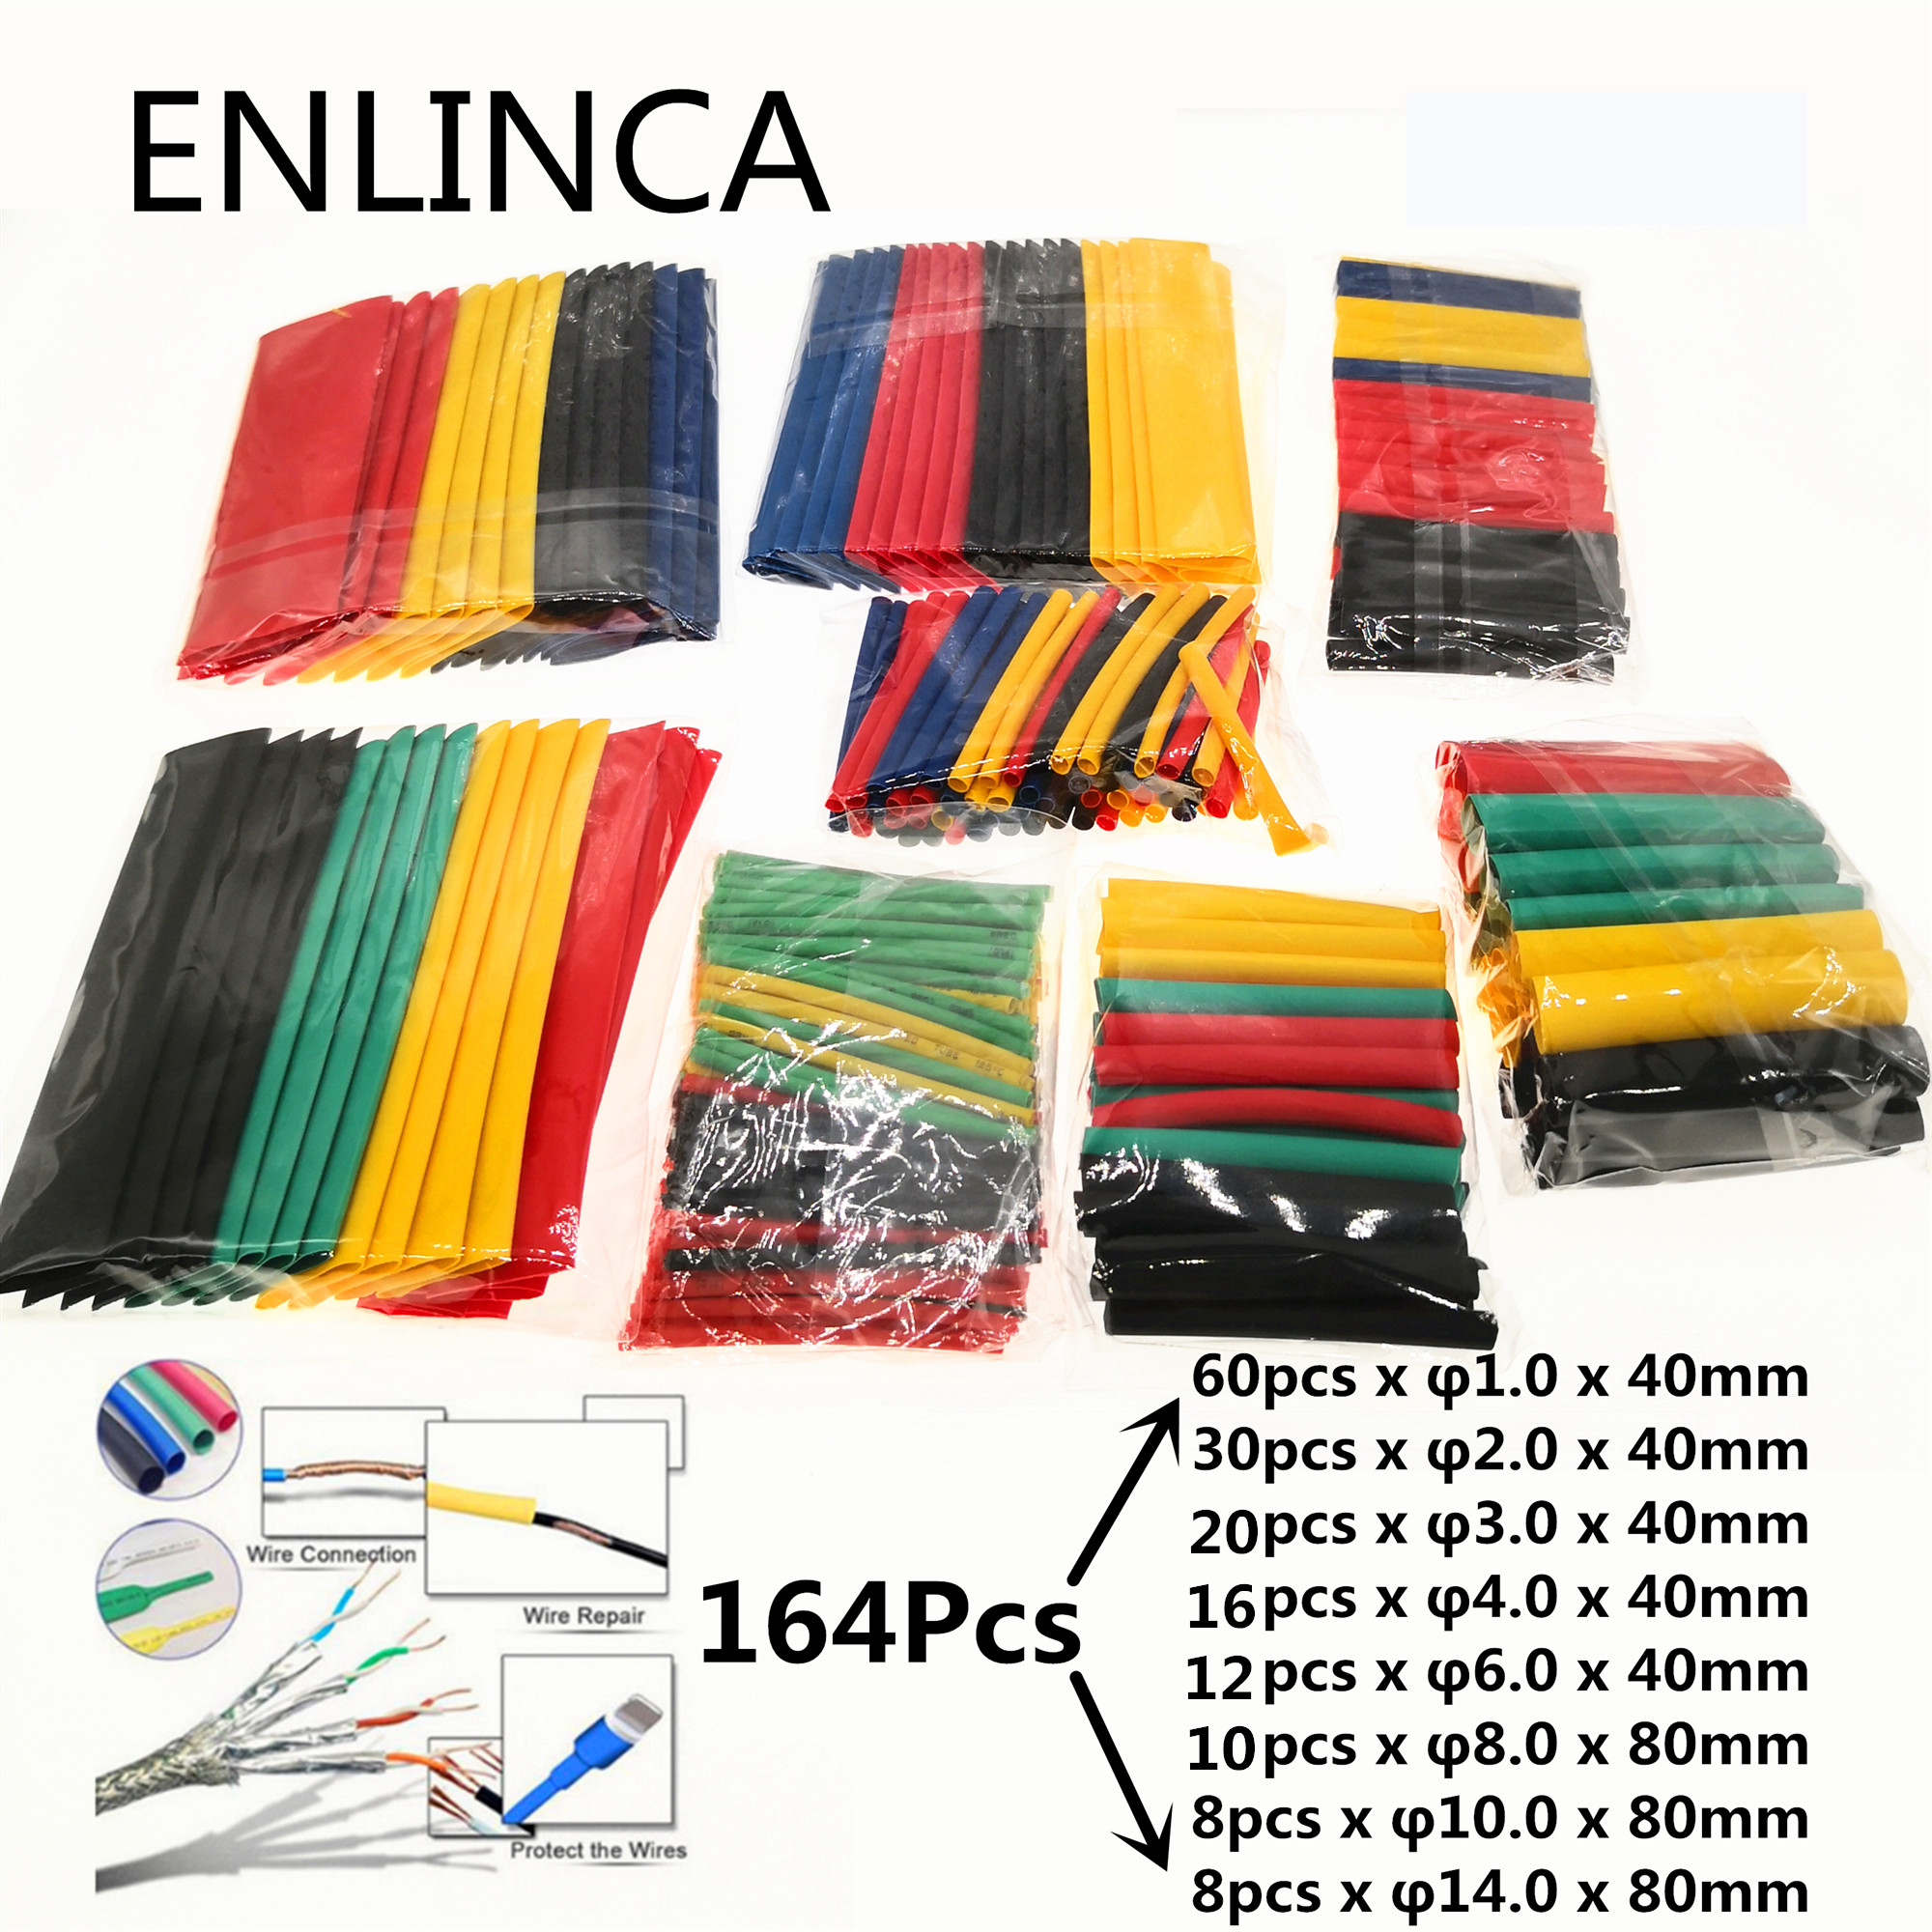 Sleeving-Tubing-Set Heat-Shrink-Tube Shrinking Insulated Wire-Cable Assorted Polyolefin